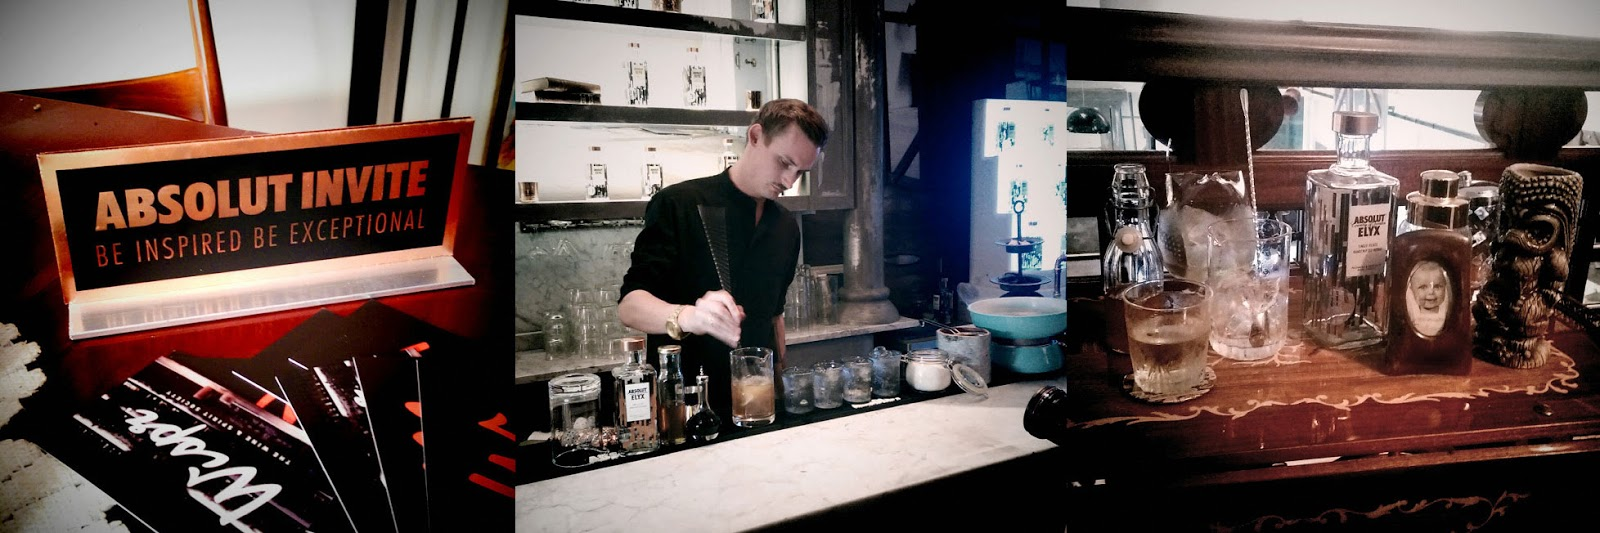 Winner of ABSOLUT Invite 2014 cocktail competition announced, Trader Magnus